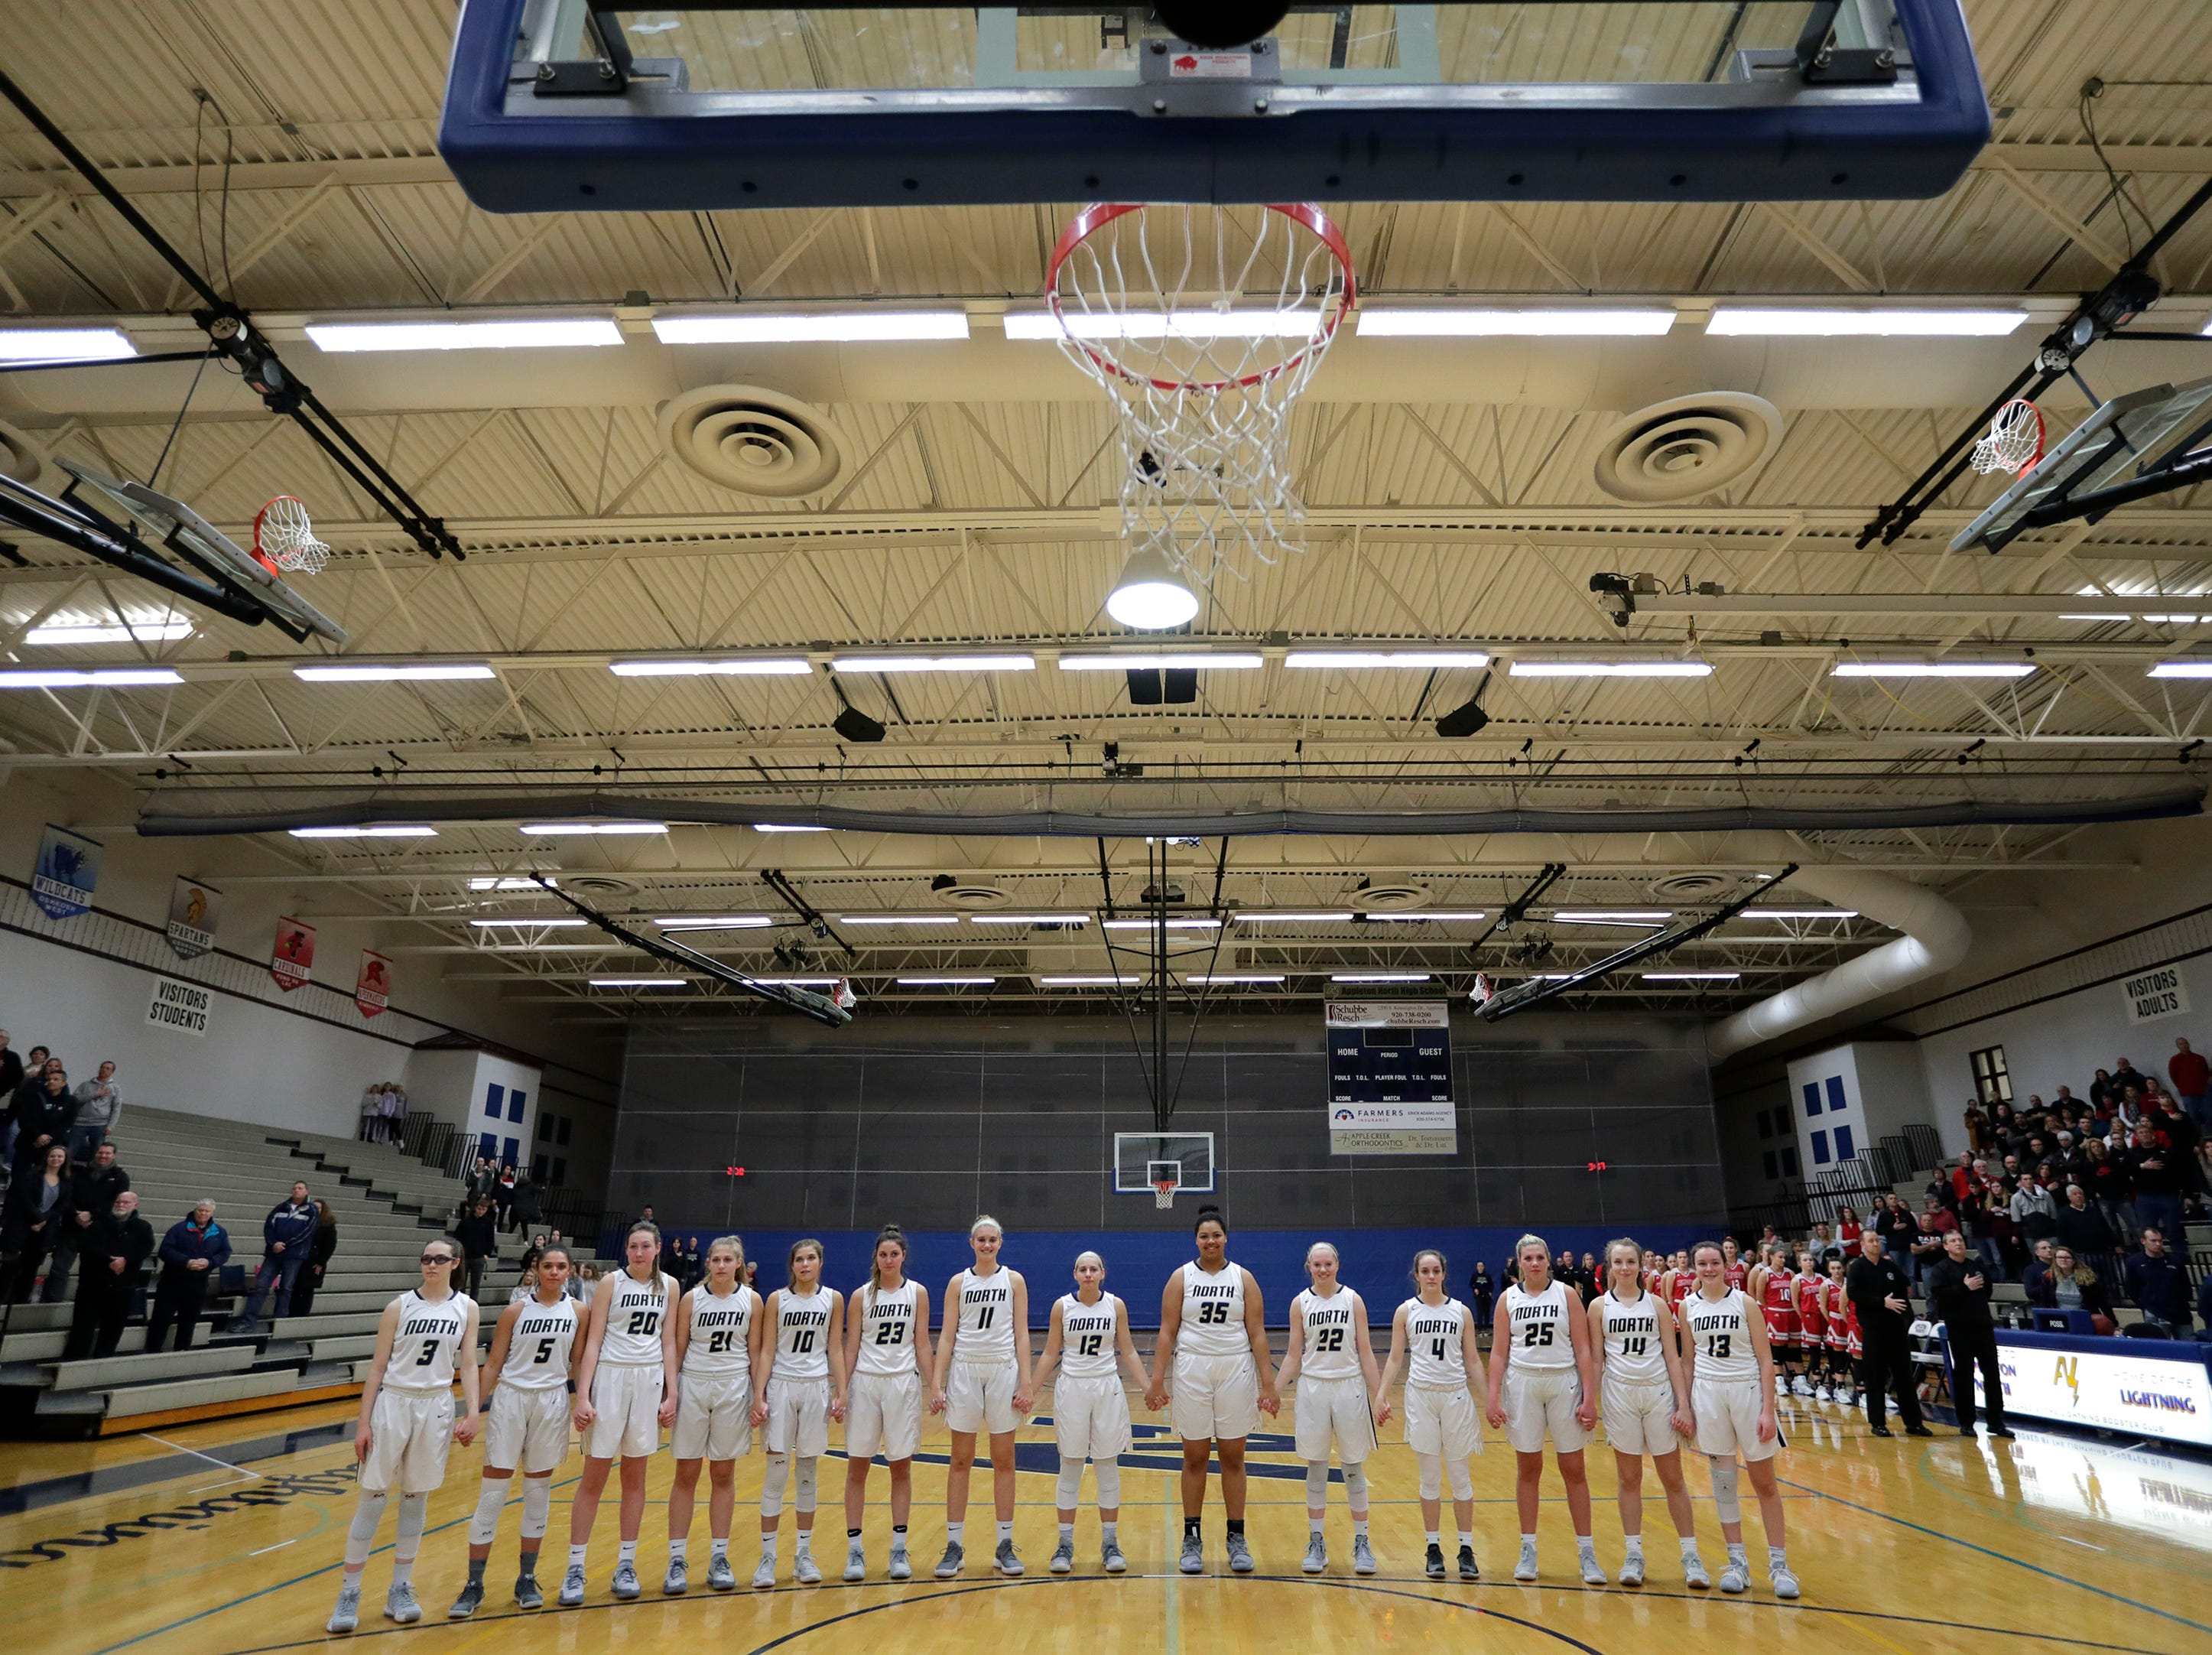 Appleton North High School's players hold hands during the national anthem before playing against Kimberly High School during their girls basketball game Tuesday, January 8, 2019, in Appleton, Wis. Dan Powers/USA TODAY NETWORK-Wisconsin